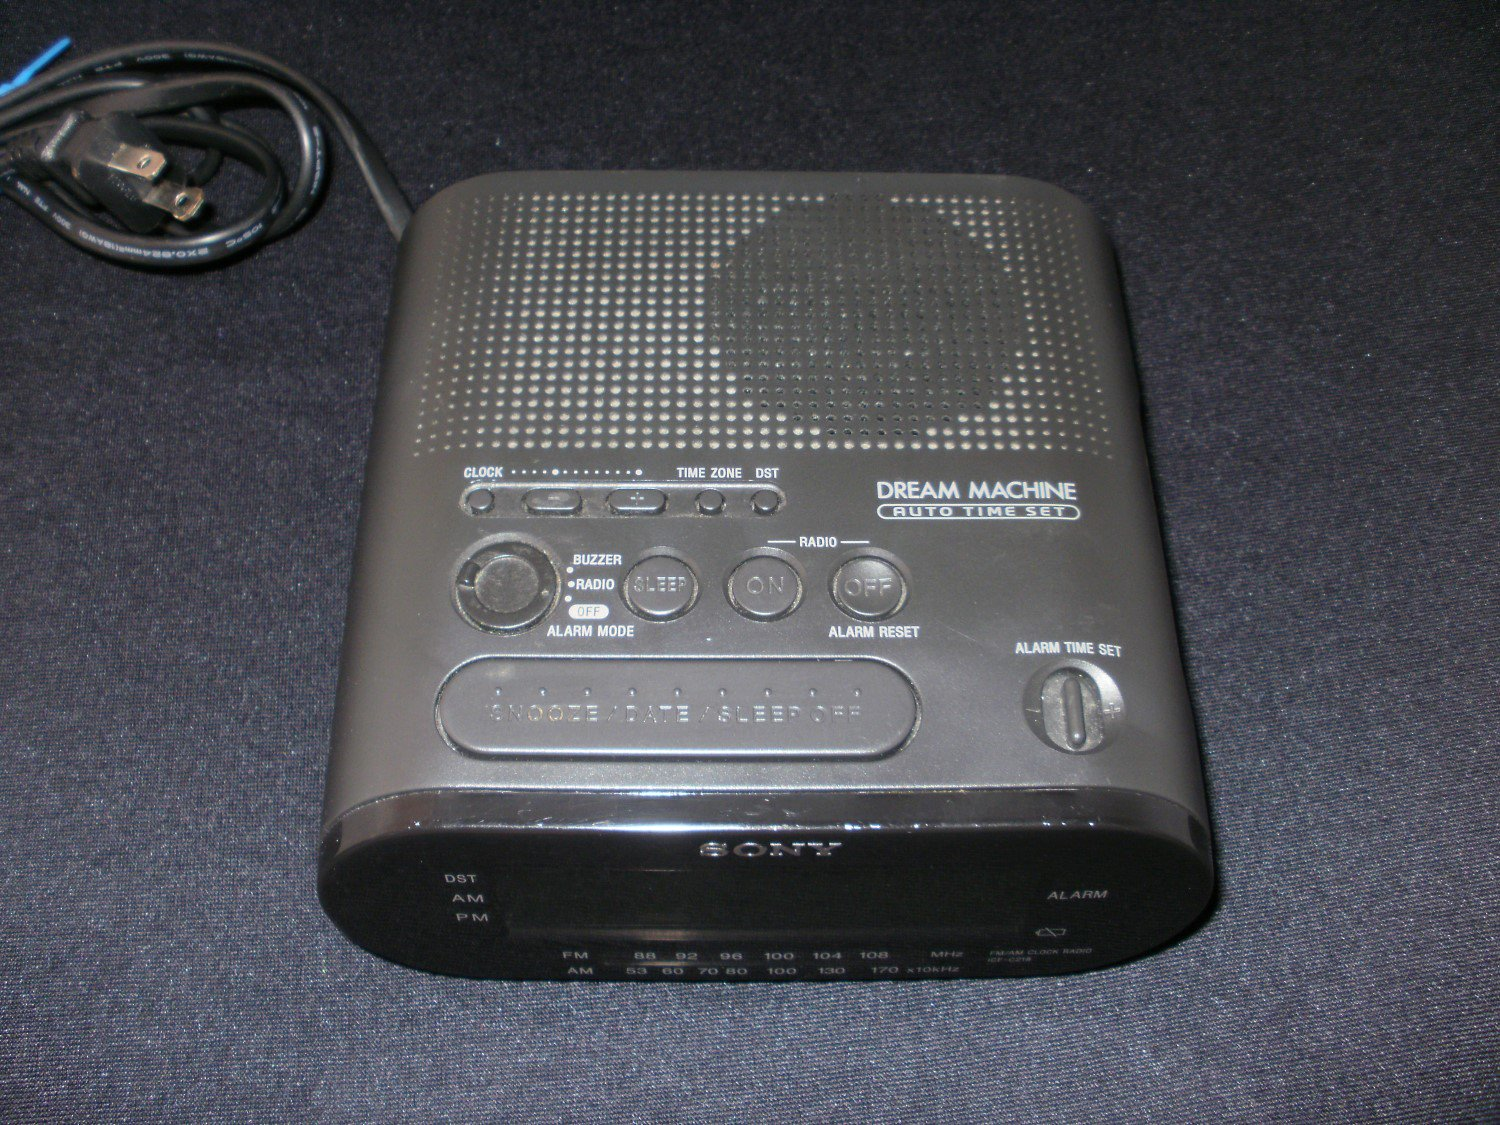 Dream Machine Alarm Clock Radio - Sony 2001